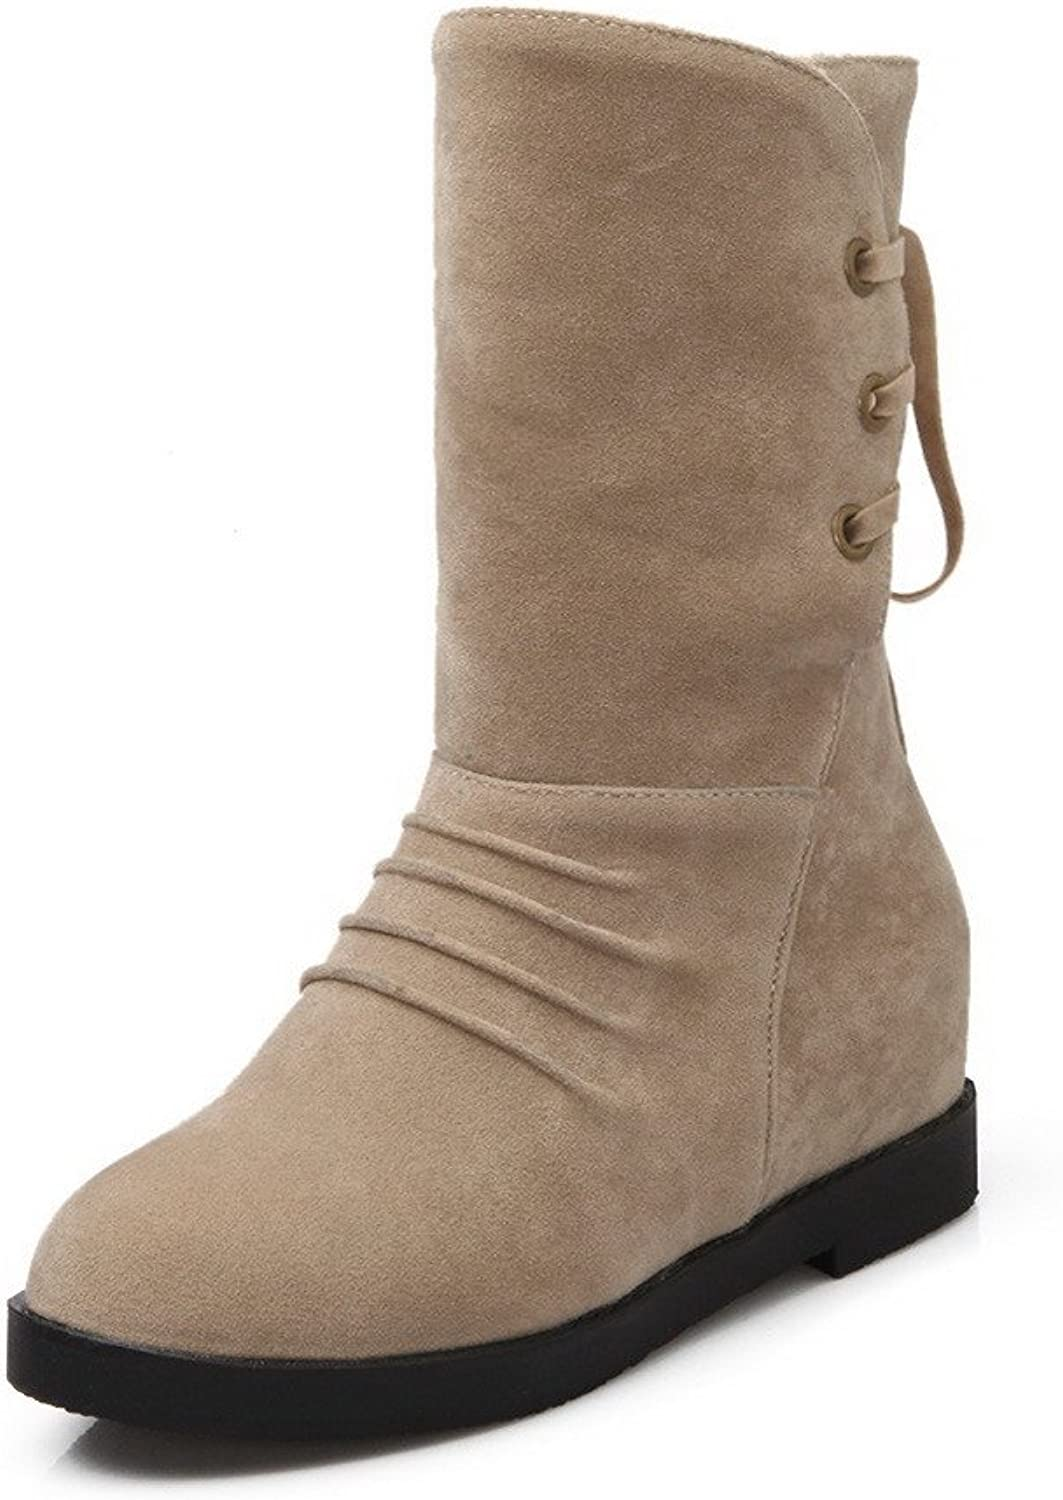 AllhqFashion Women's Lace up Kitten Heels Imitated Suede Solid Mid Top Boots